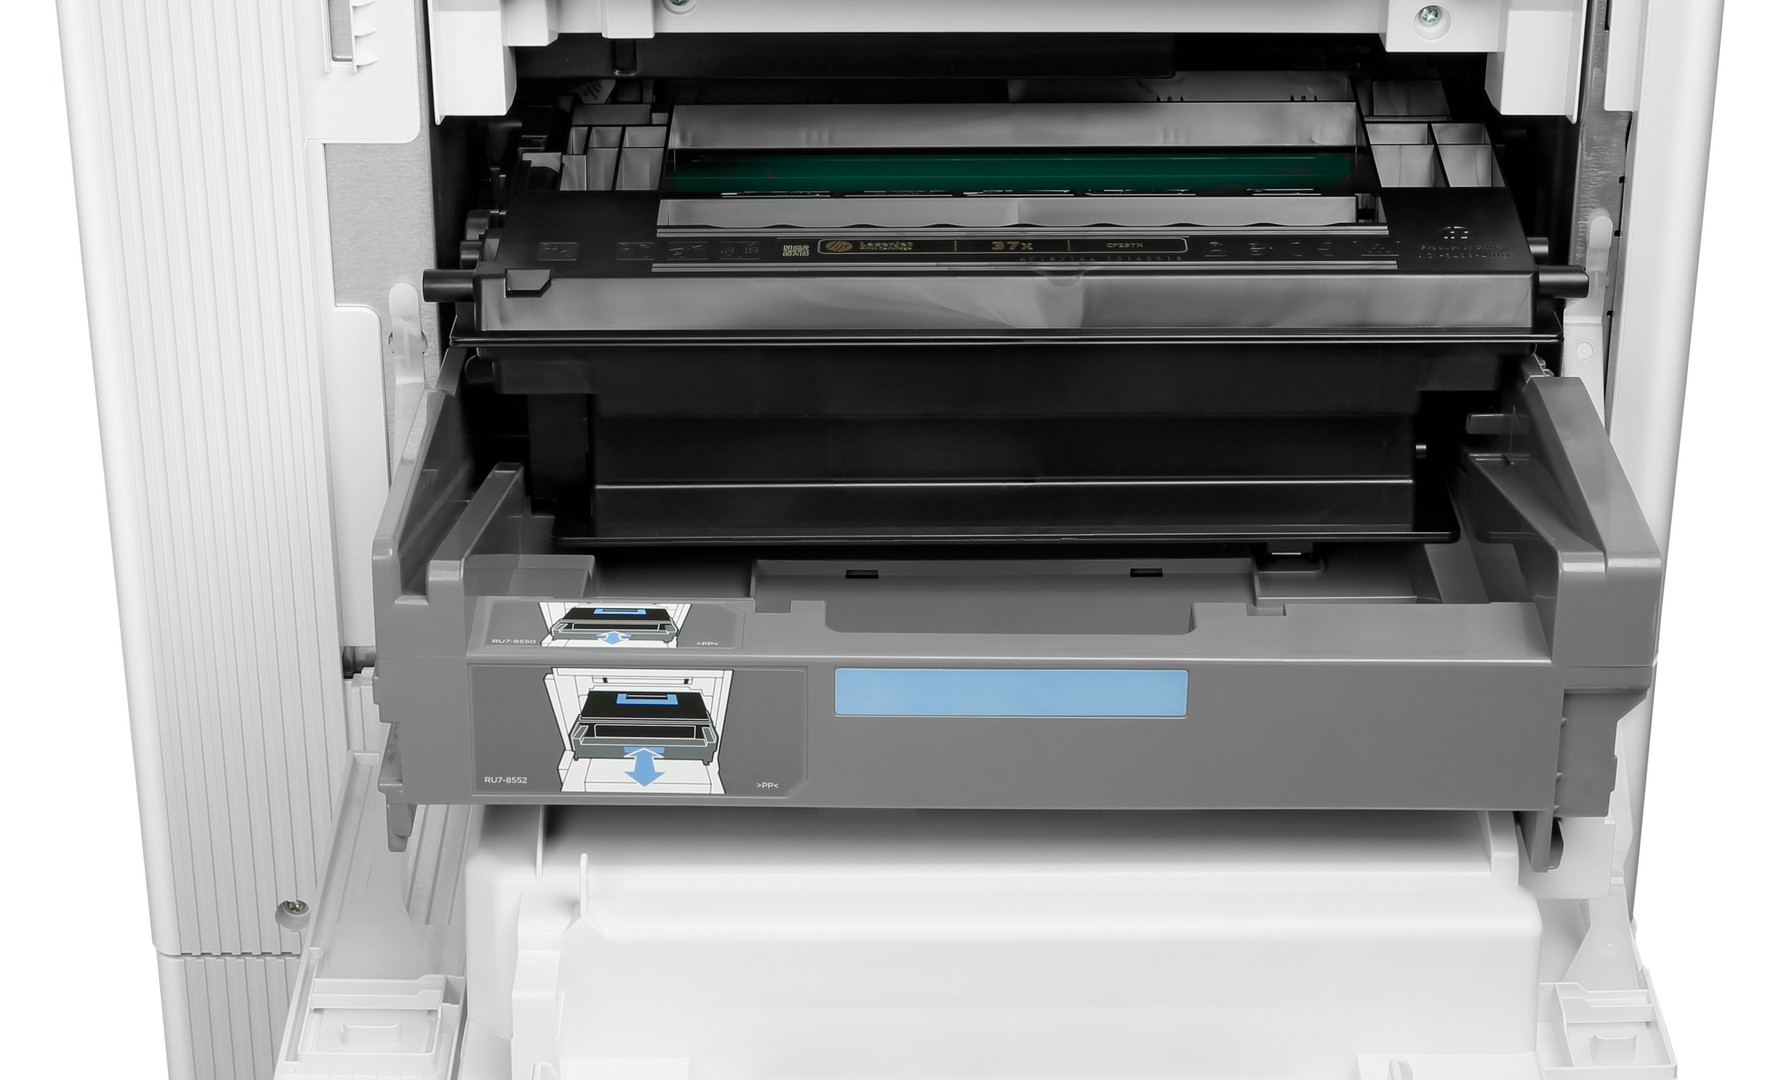 E62565h_detail_toner_in.jpg